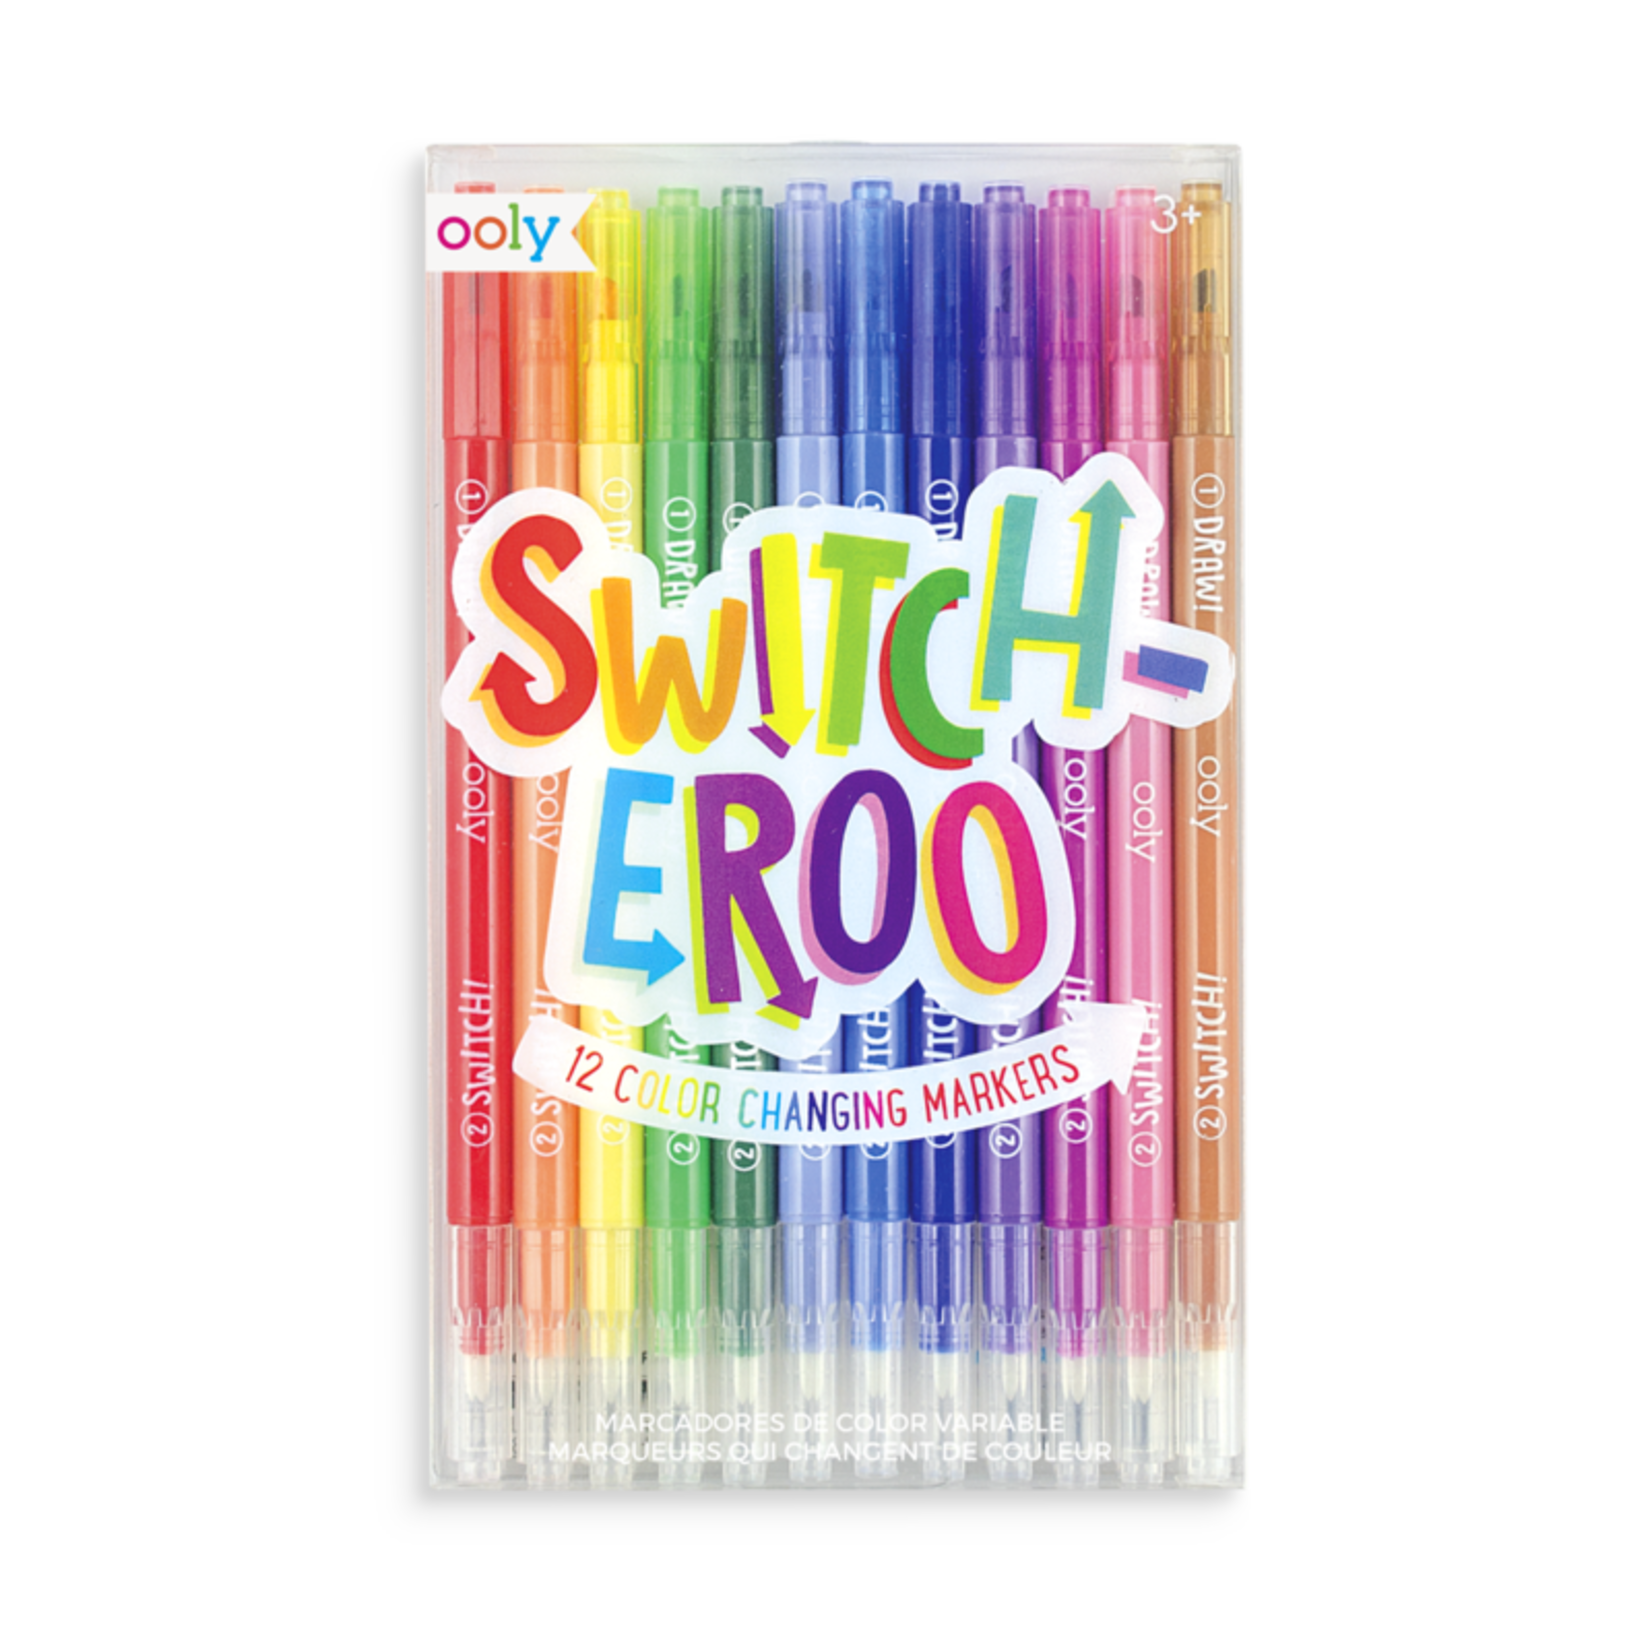 OOLY Switcheroo Color Changing Markers